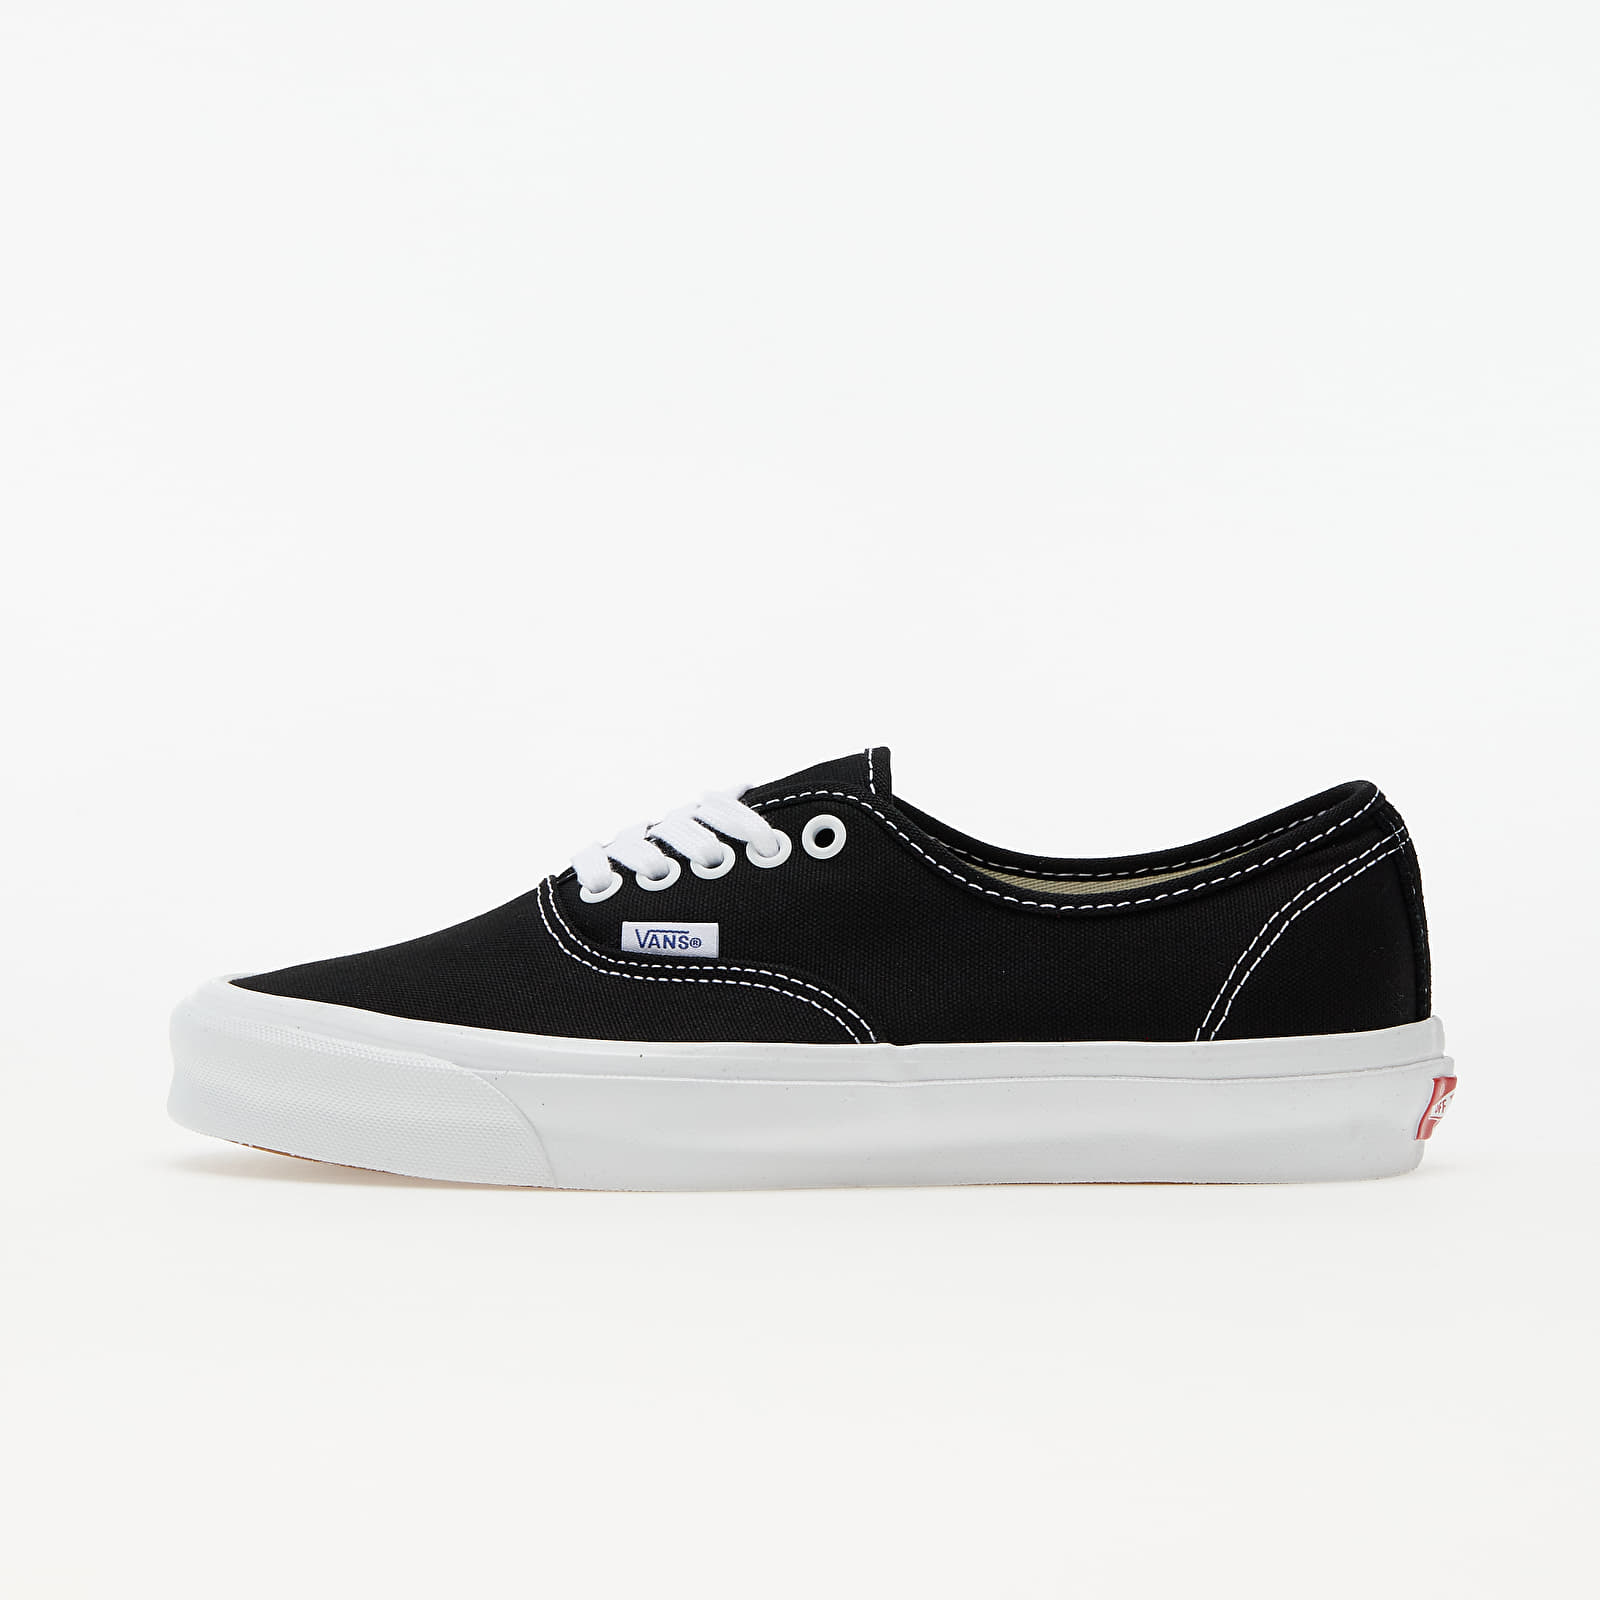 Vans OG Authentic LX (Canvas) Black/ True White EUR 40.5